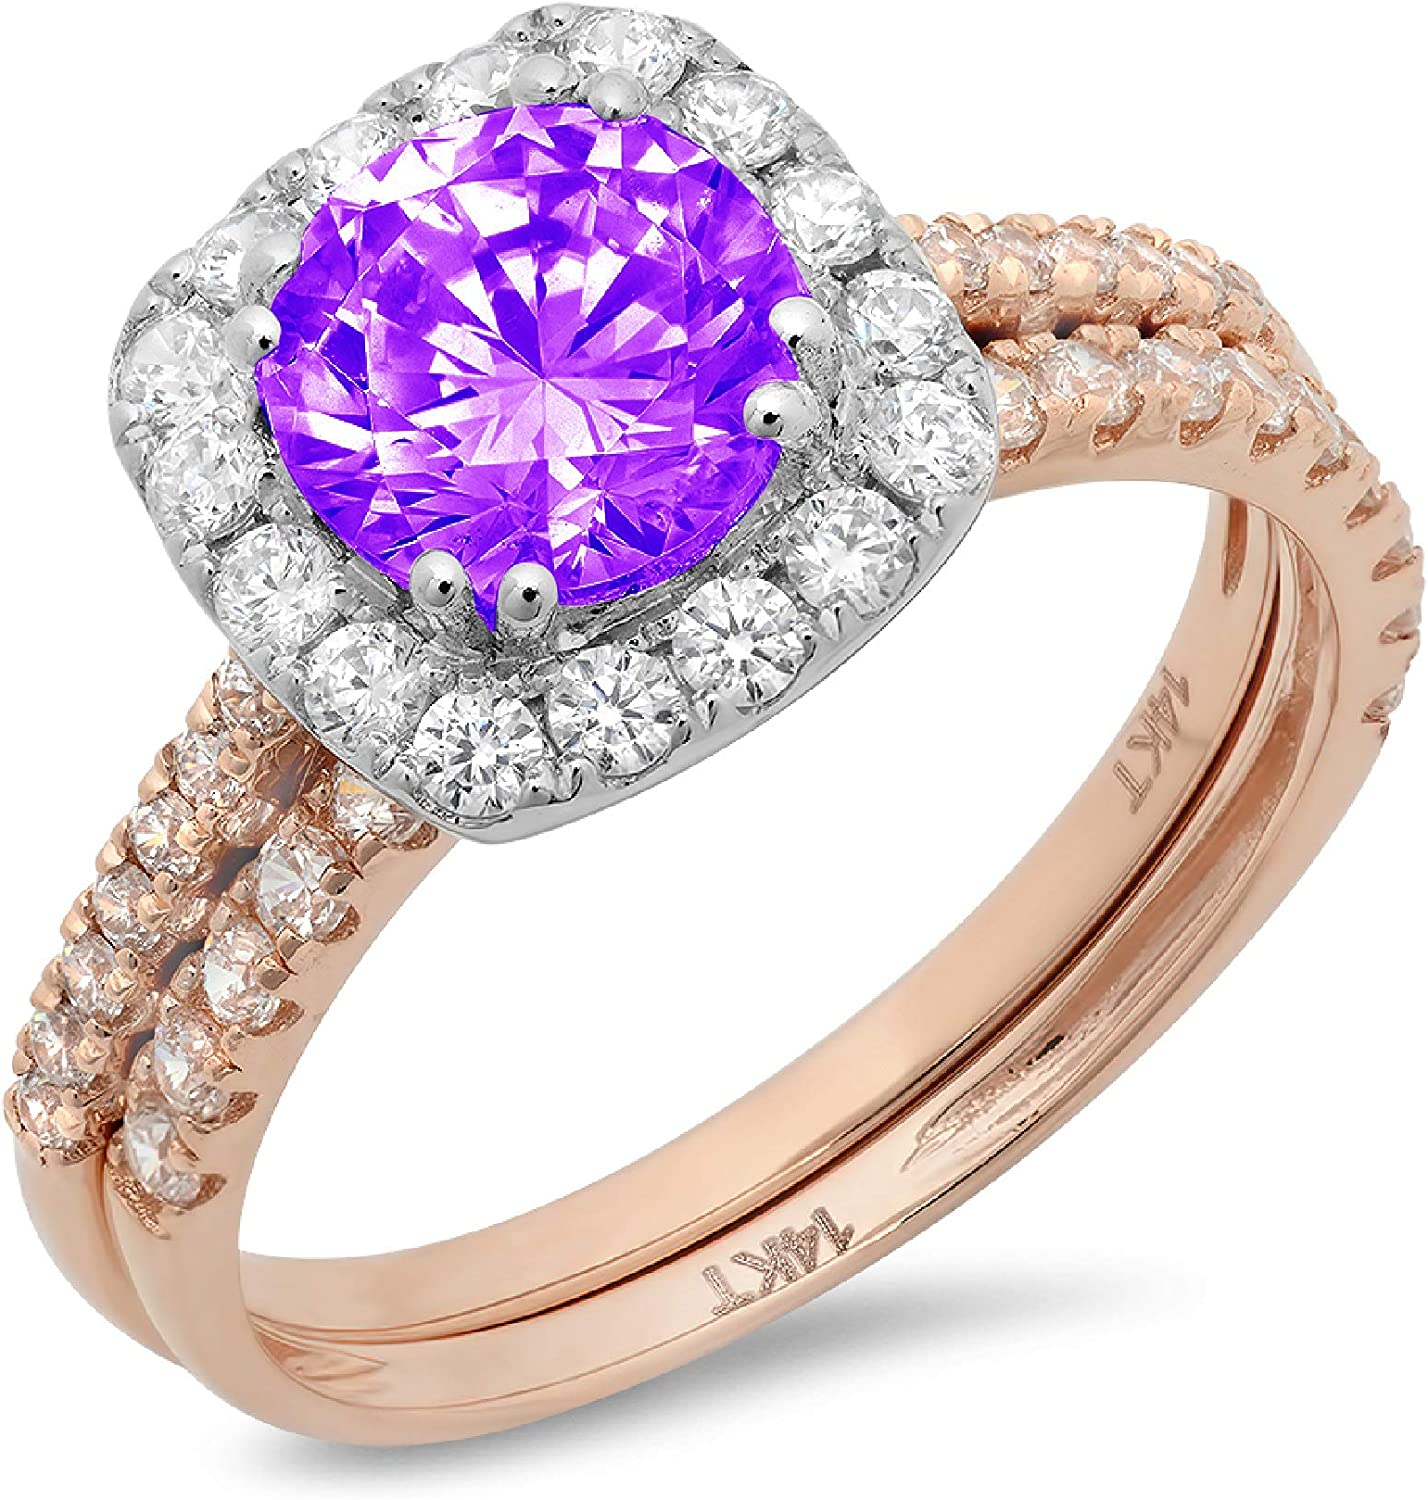 2.25ct Round Cut Halo Pave Solitaire Halo Accent Natural Purple Amethyst Engagement Promise Statement Anniversary Bridal Wedding Ring Band set Real Solid 14k 2 Tone Gold